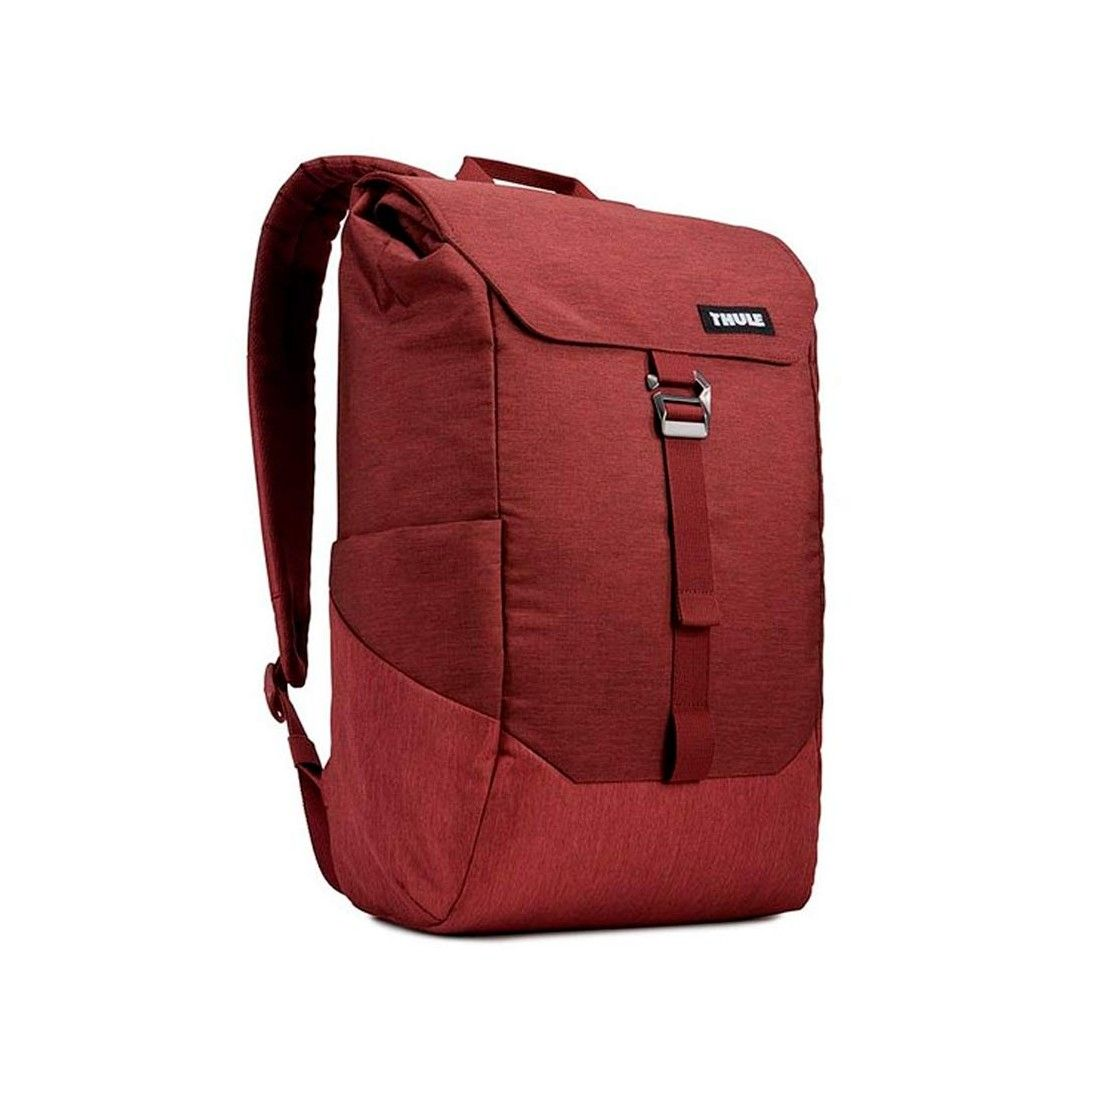 Mochila Lithos Backpack 16 L - Thule